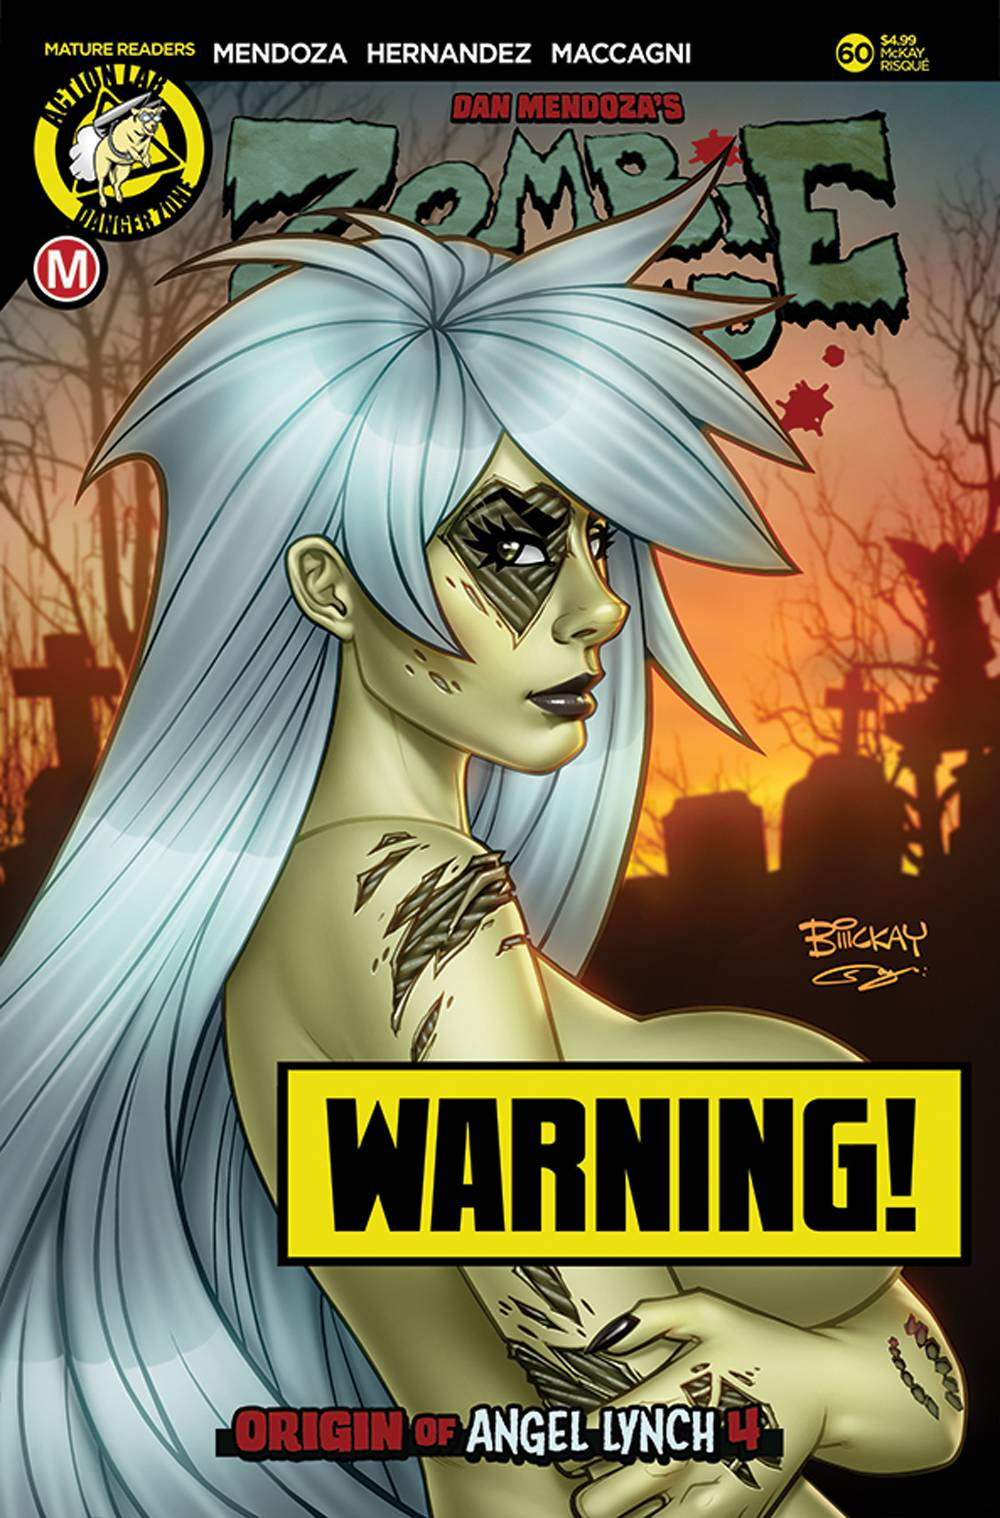 ZOMBIE TRAMP ONGOING 60 CVR D MCKAY RISQUE LTD ED.jpg